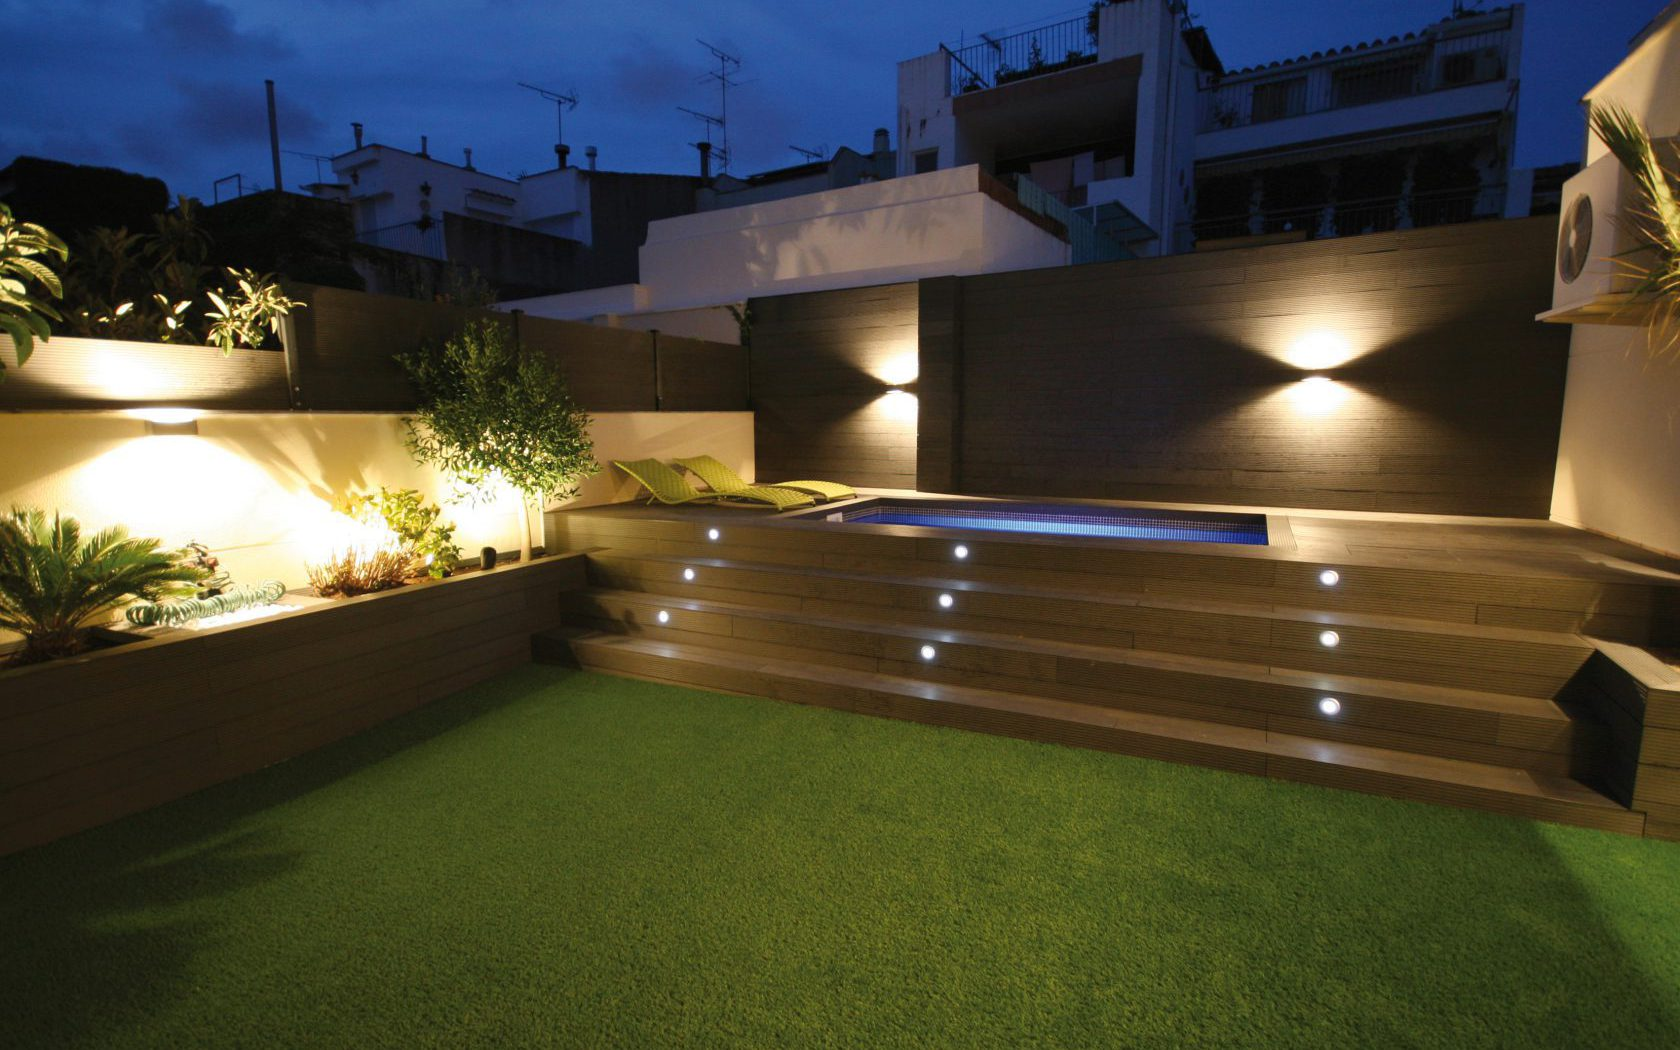 Speedgrass jard n terraza cesped artificial mobiliario for Terrazas y piscinas modernas